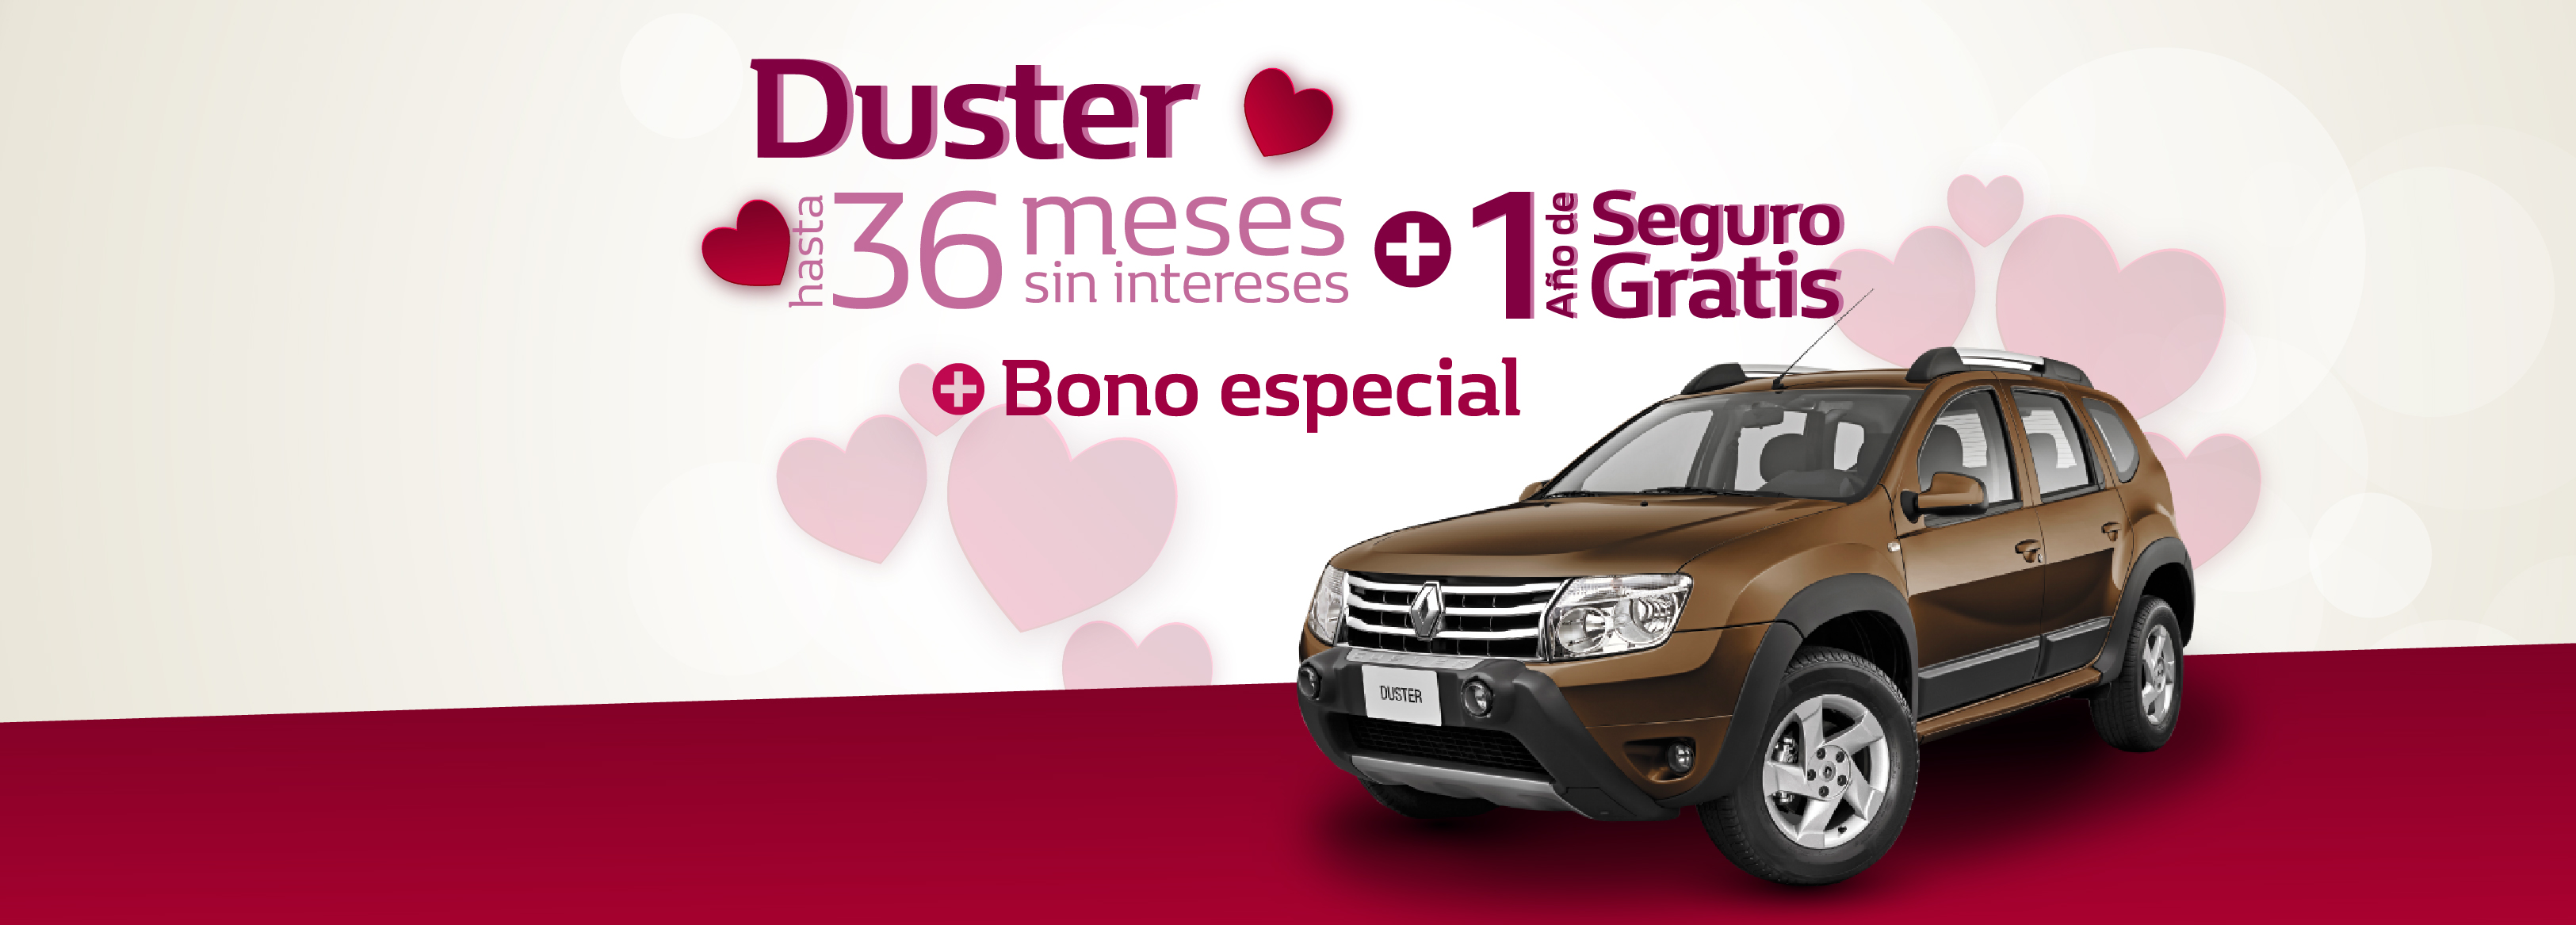 duster, 2016, renault, nissan march